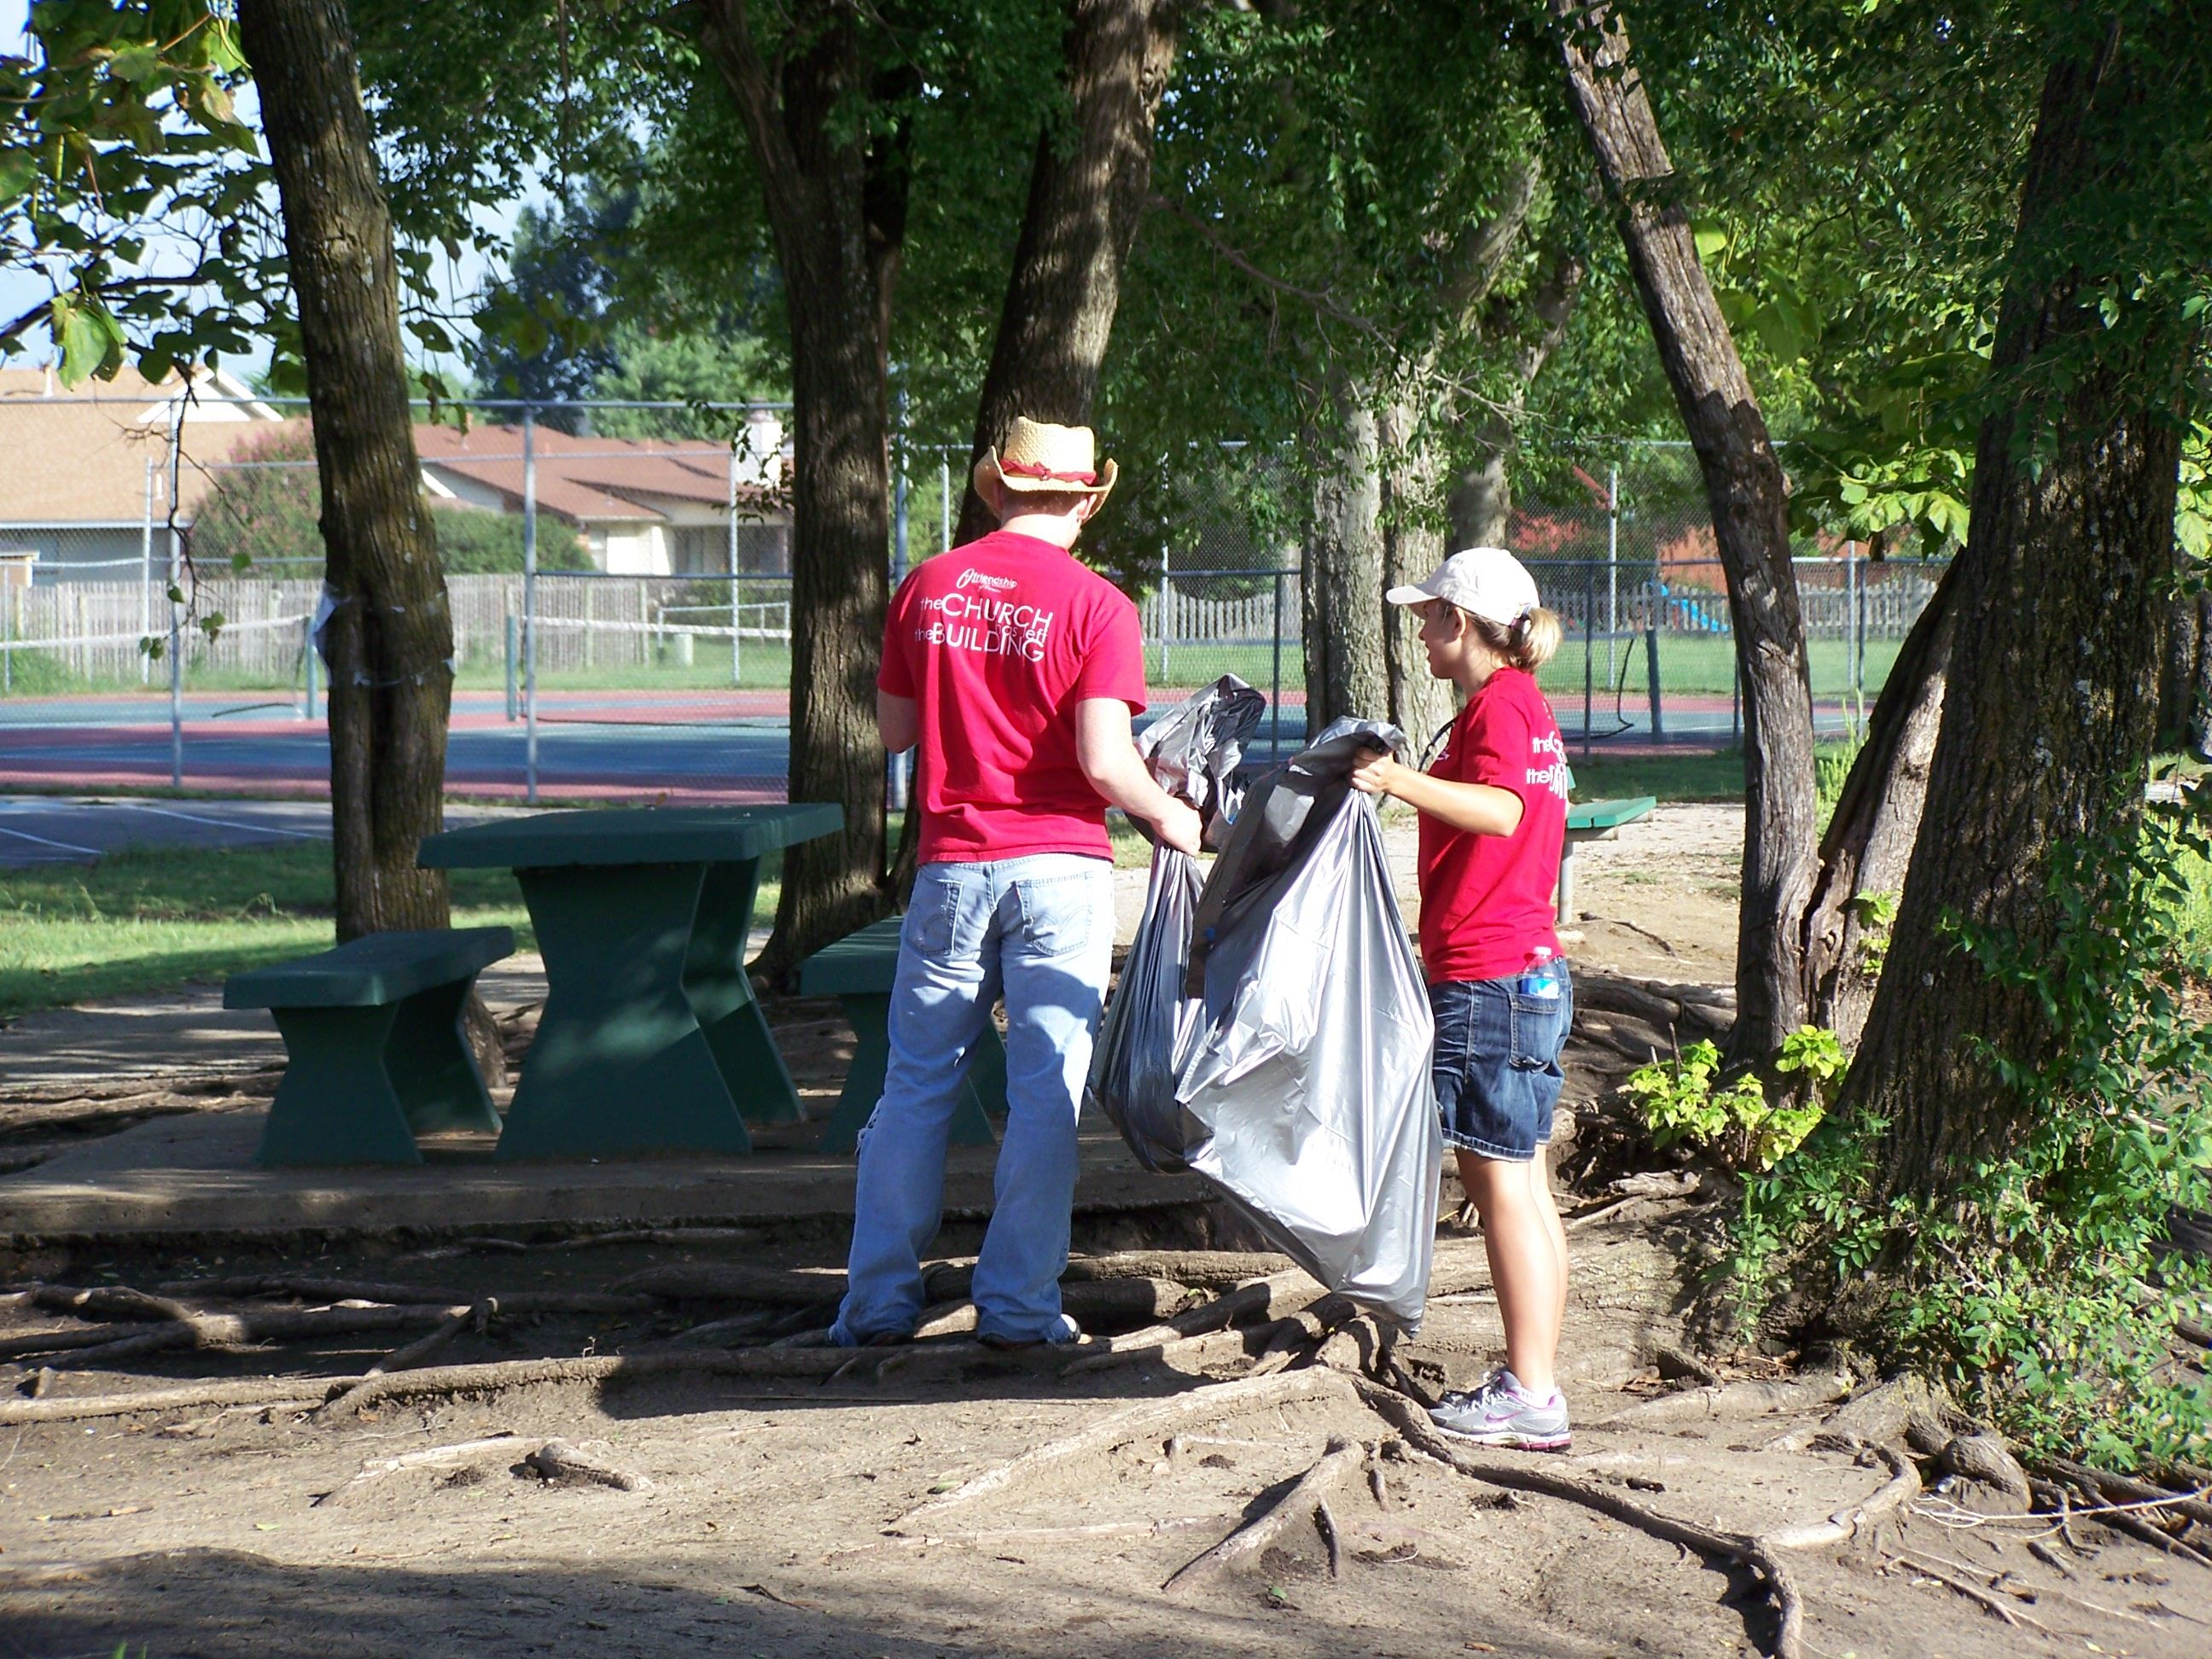 Volunteers pick up litter at park